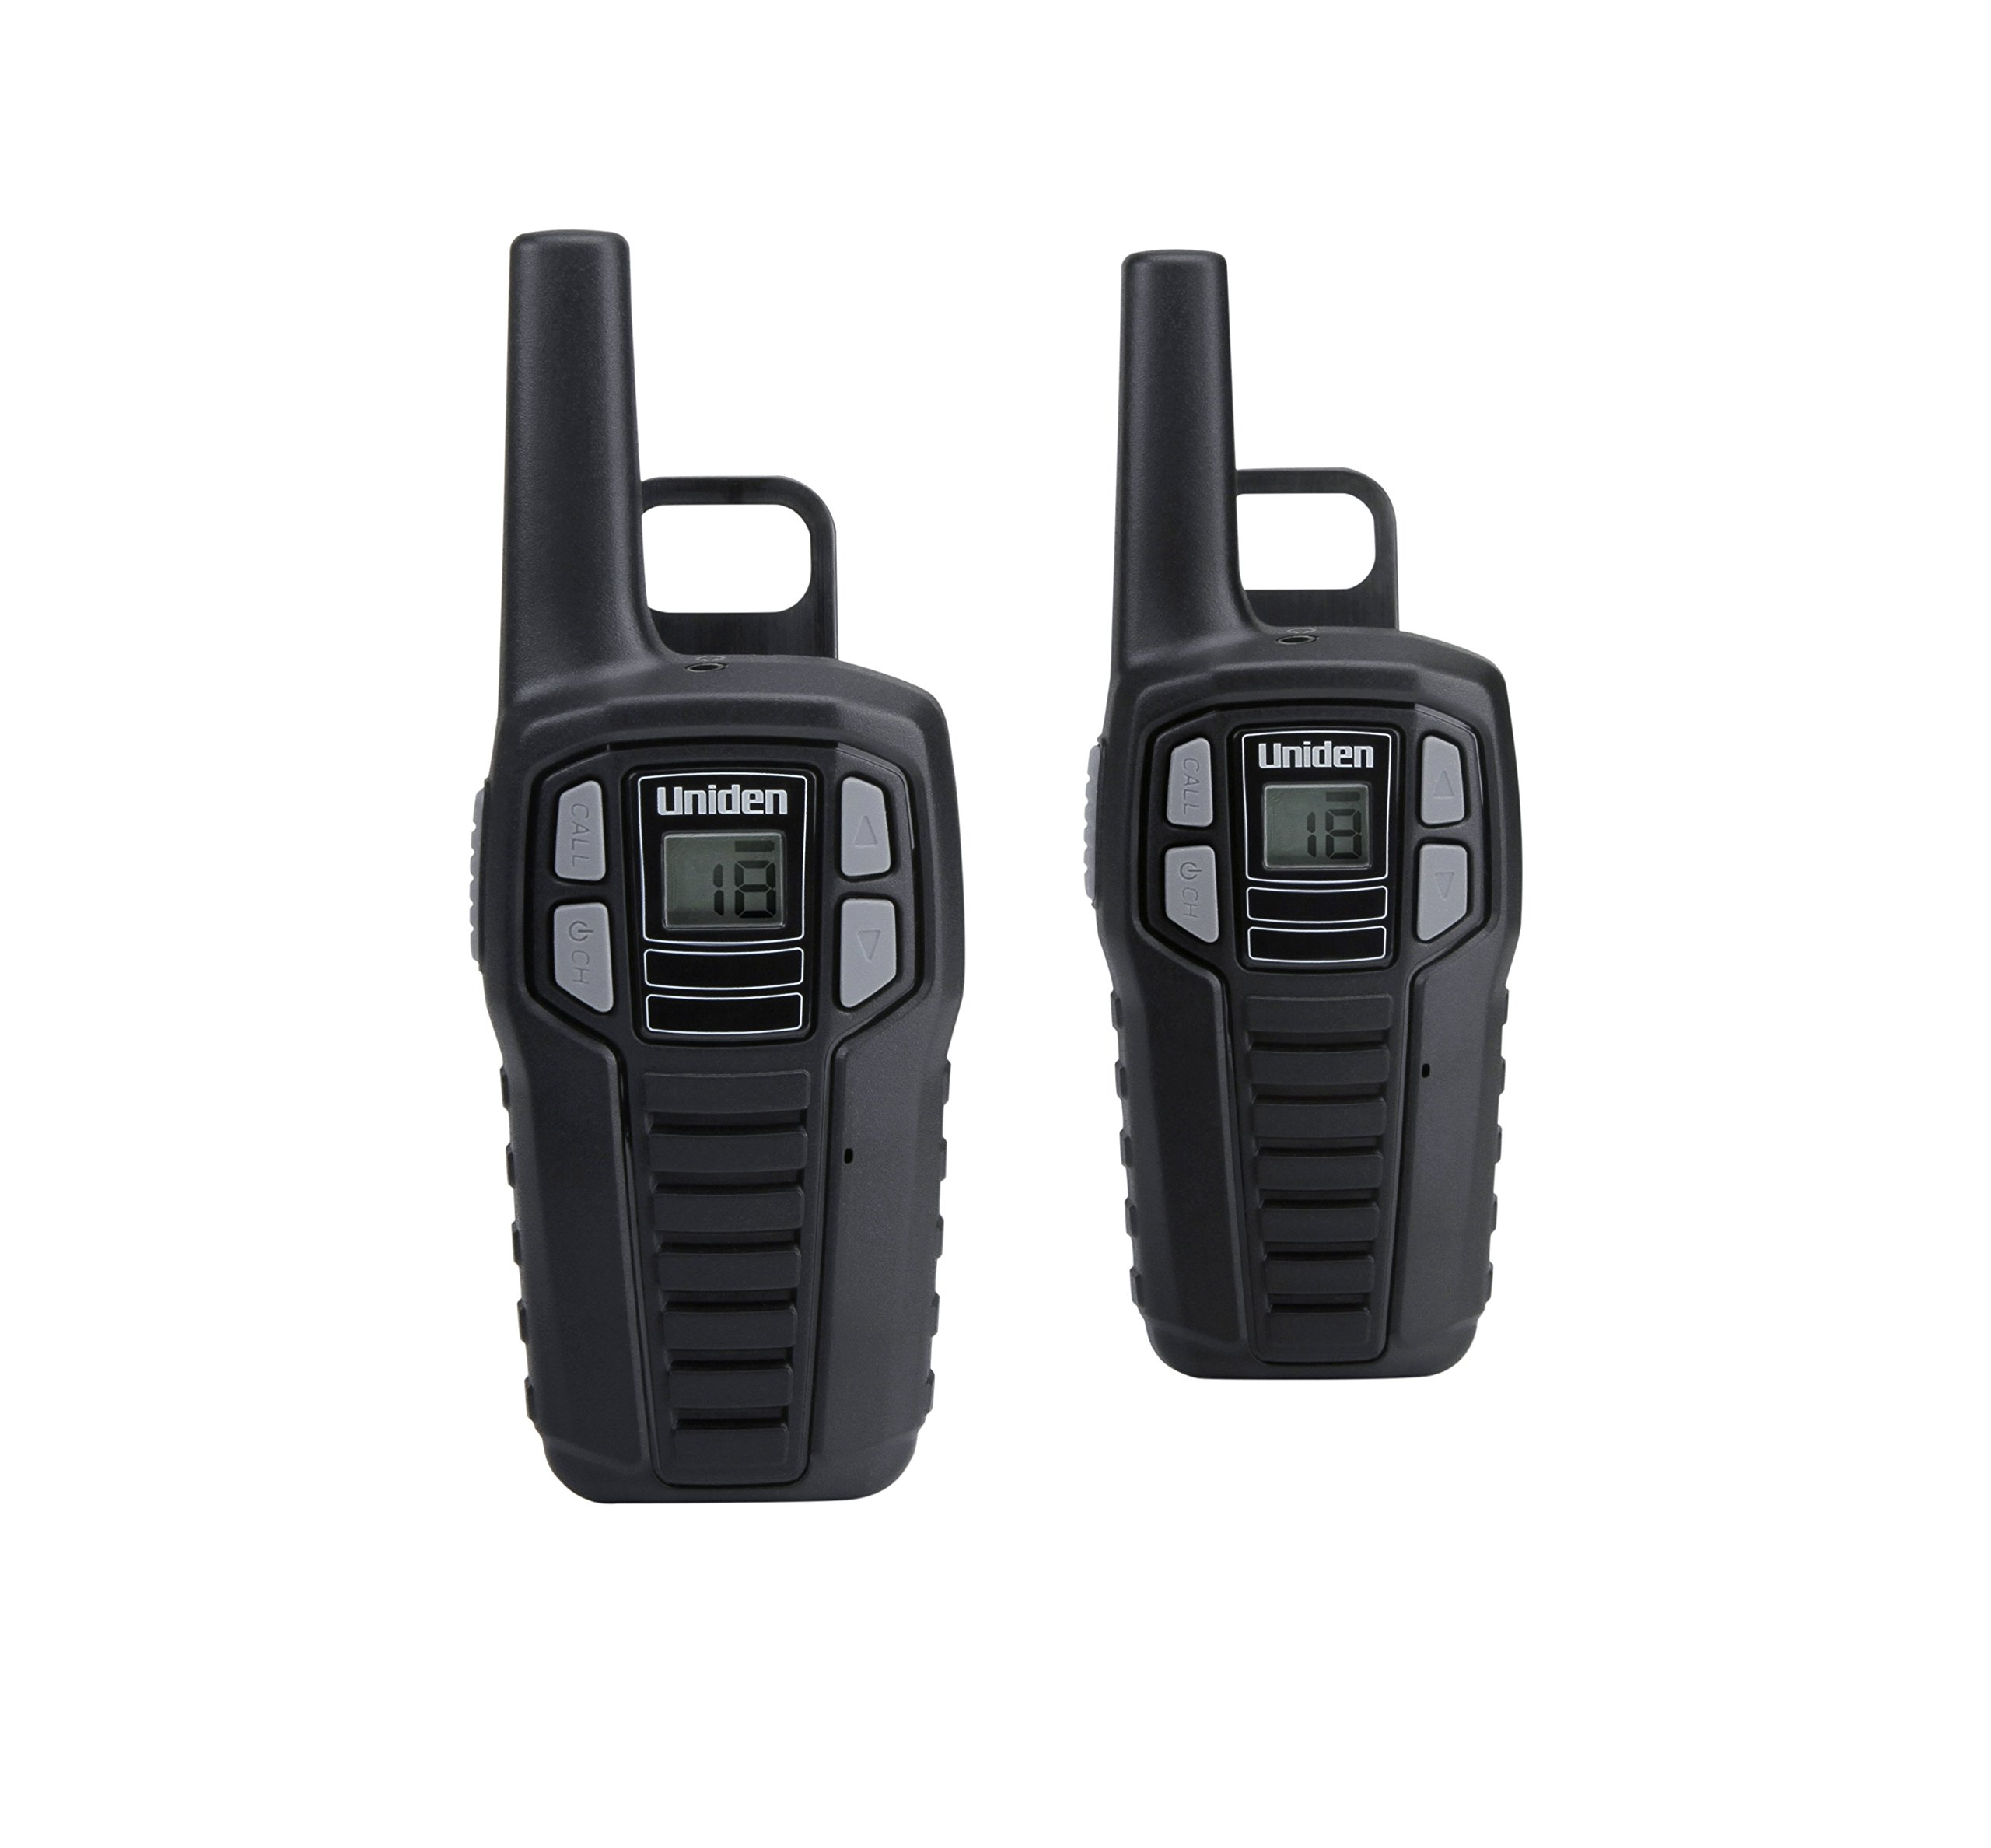 Uniden SX167-2CH 16 Mile FRS/GMRS Two-Way Radios with Convenient Charging Kit. NOAA Weather, 2-Pack - Black Color